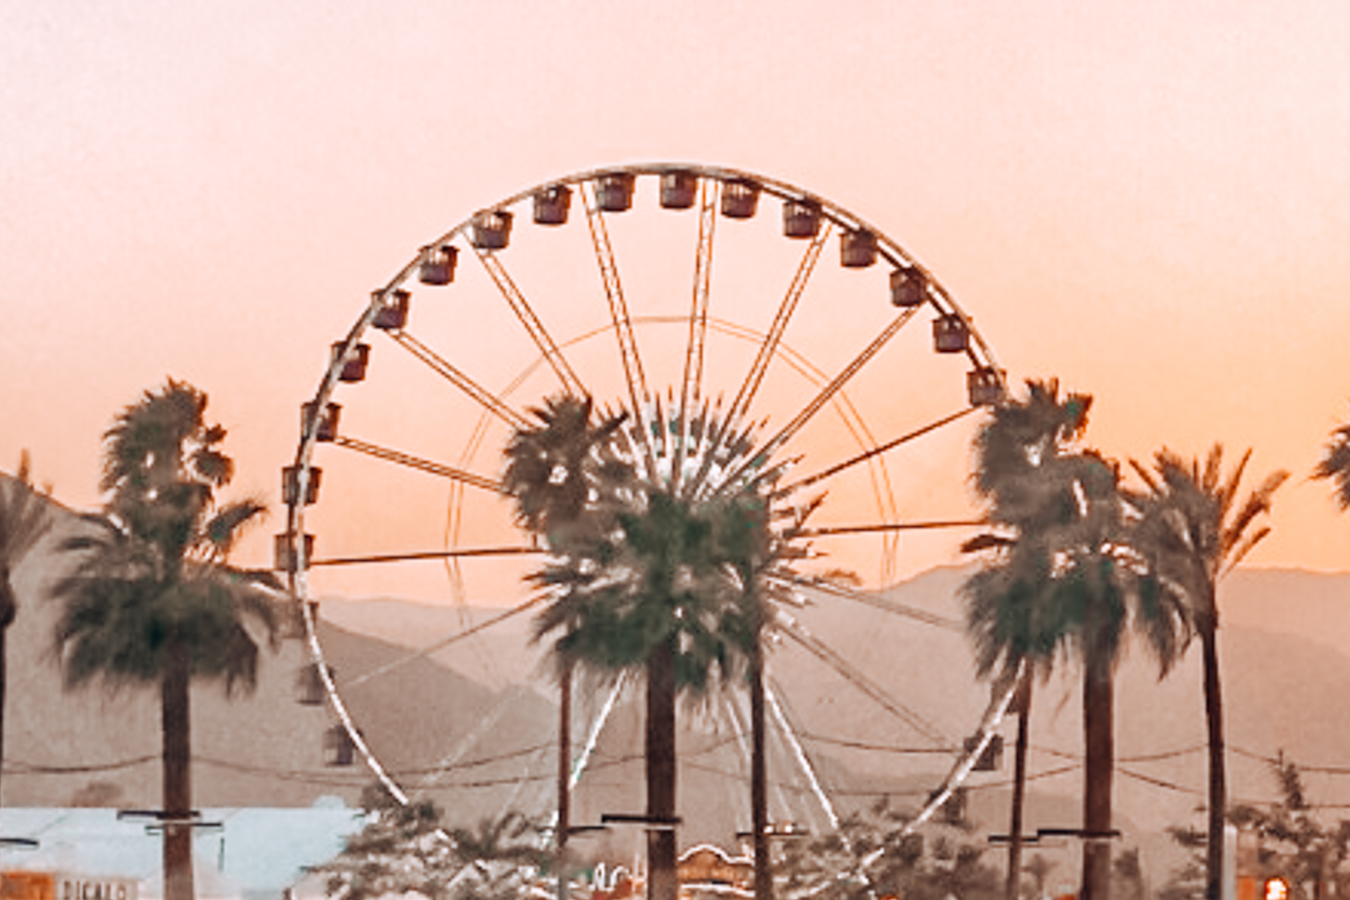 Instagrammable Ferris wheel at Coachella Valley Music and Arts Festival in Palm Springs